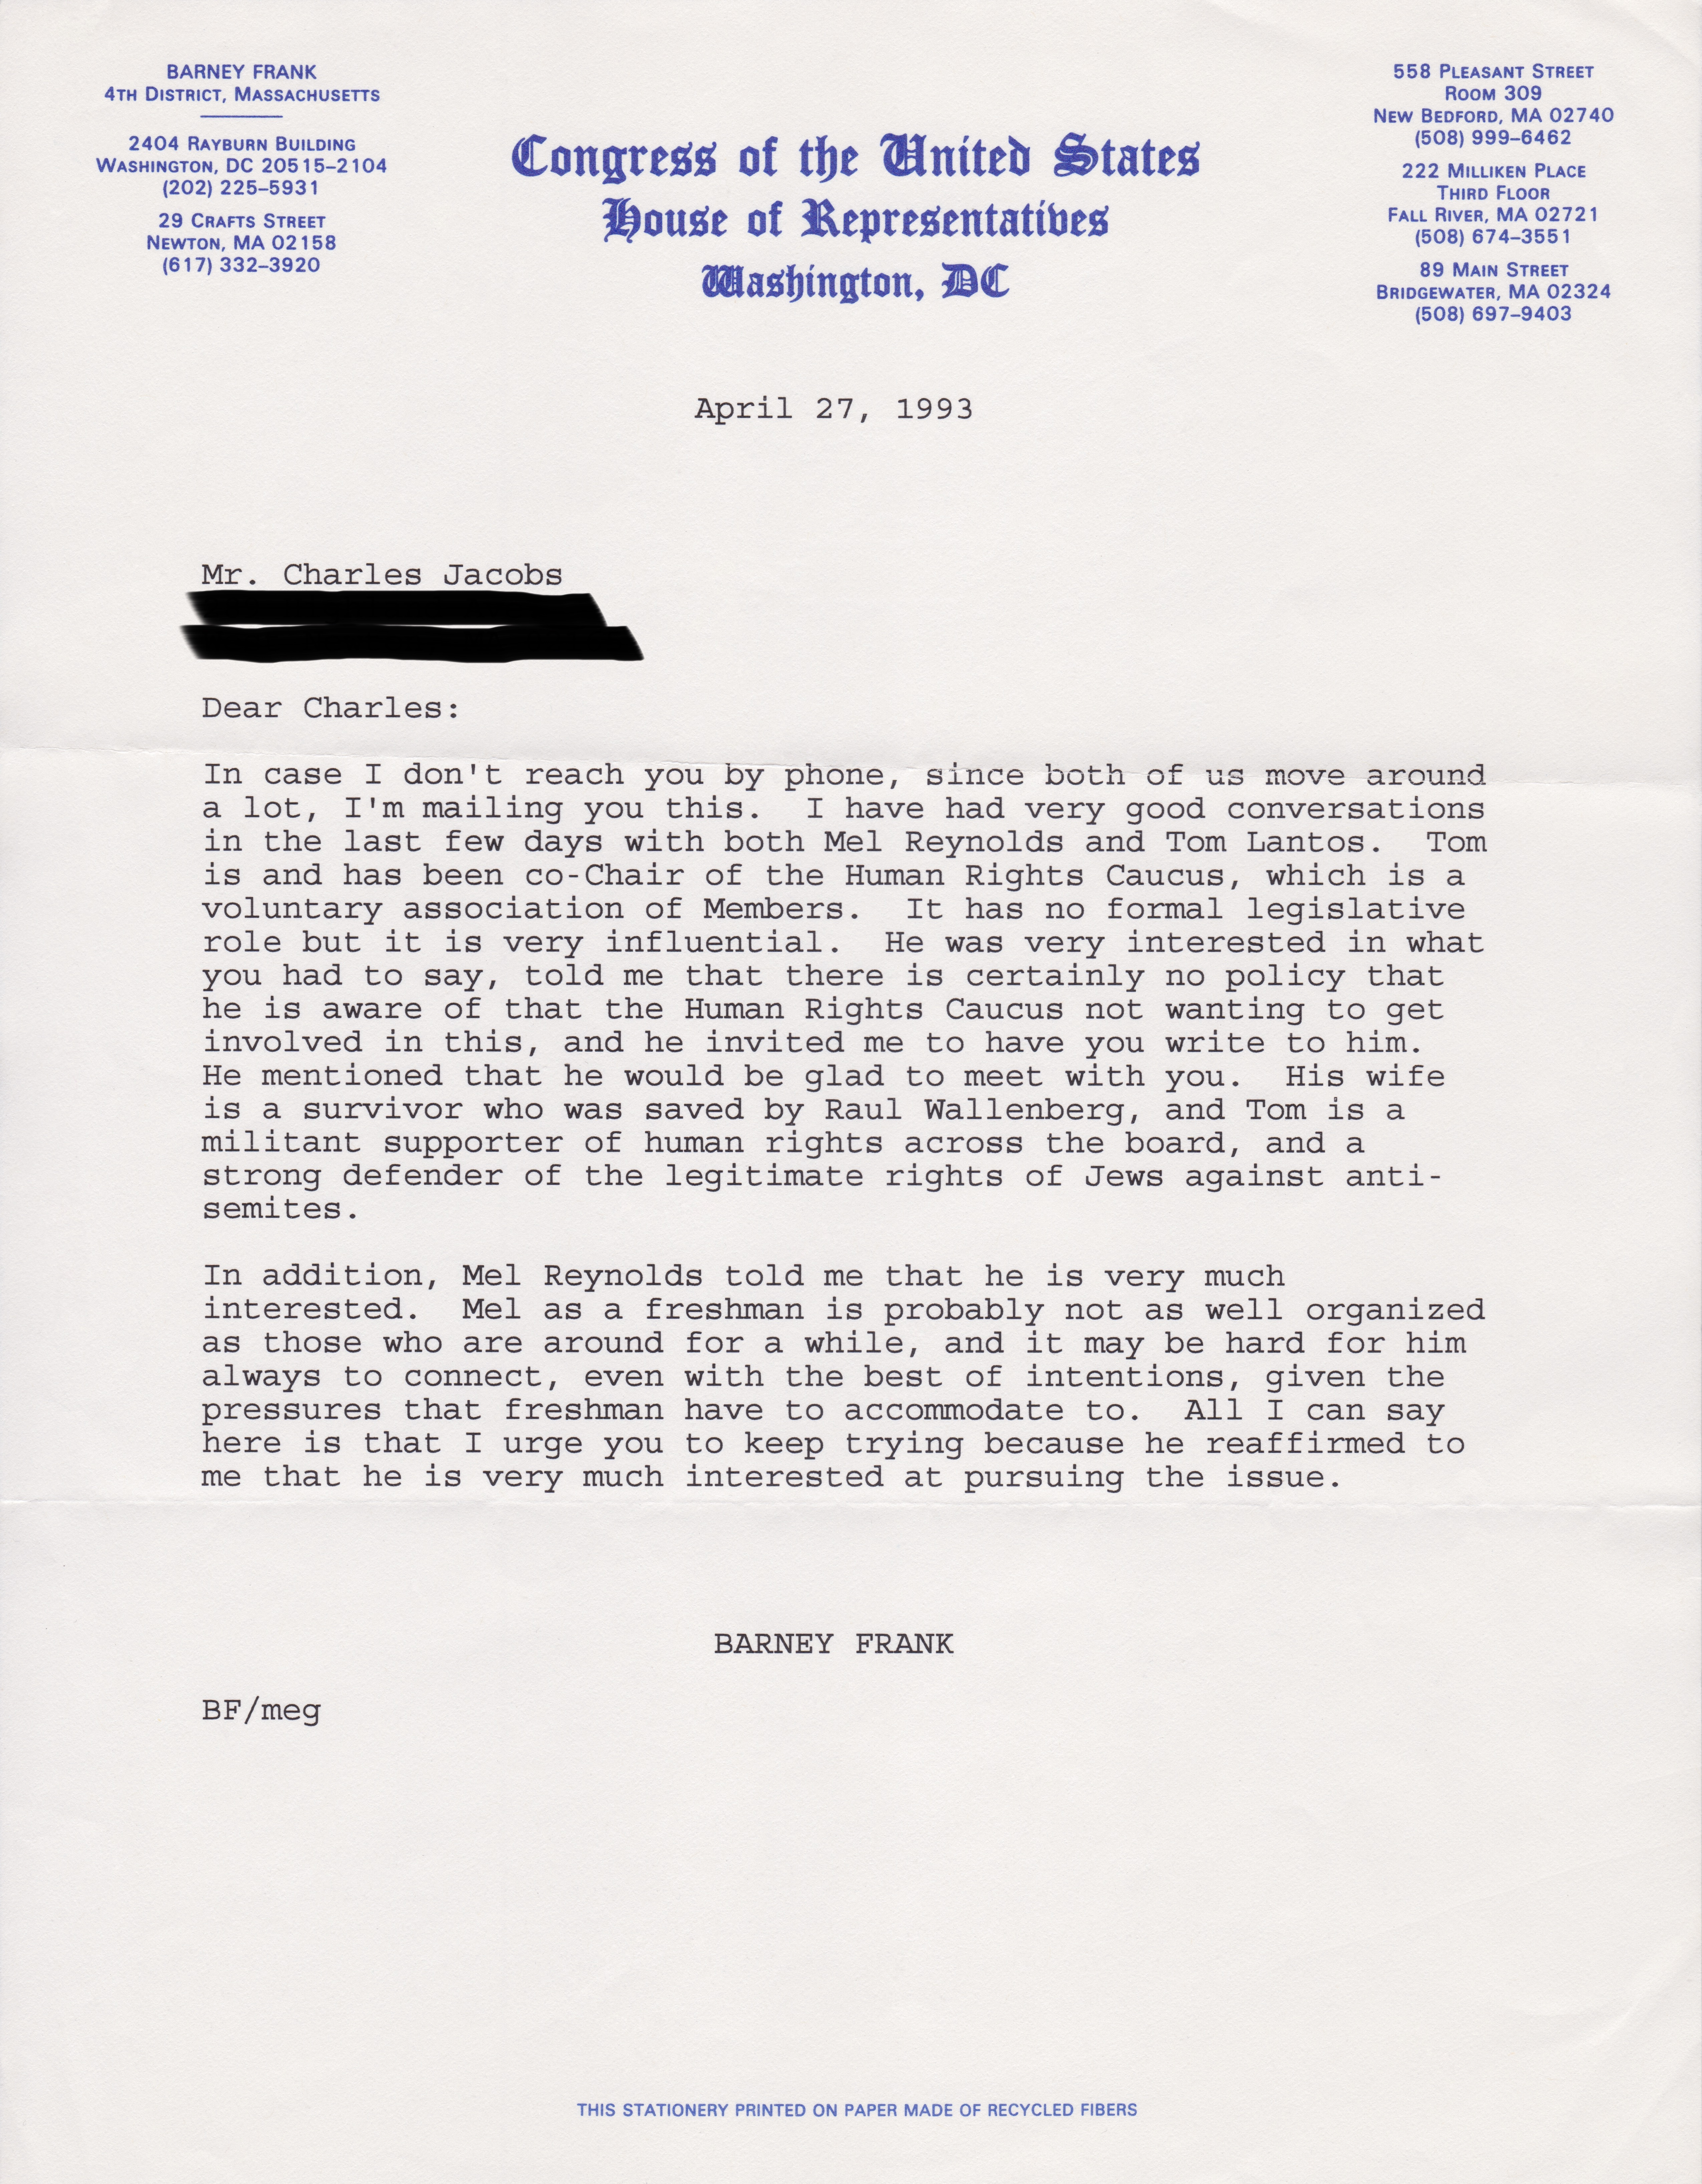 Letter to Dr. Charles Jacobs from Representative Barney Frank (April 27, 1993)